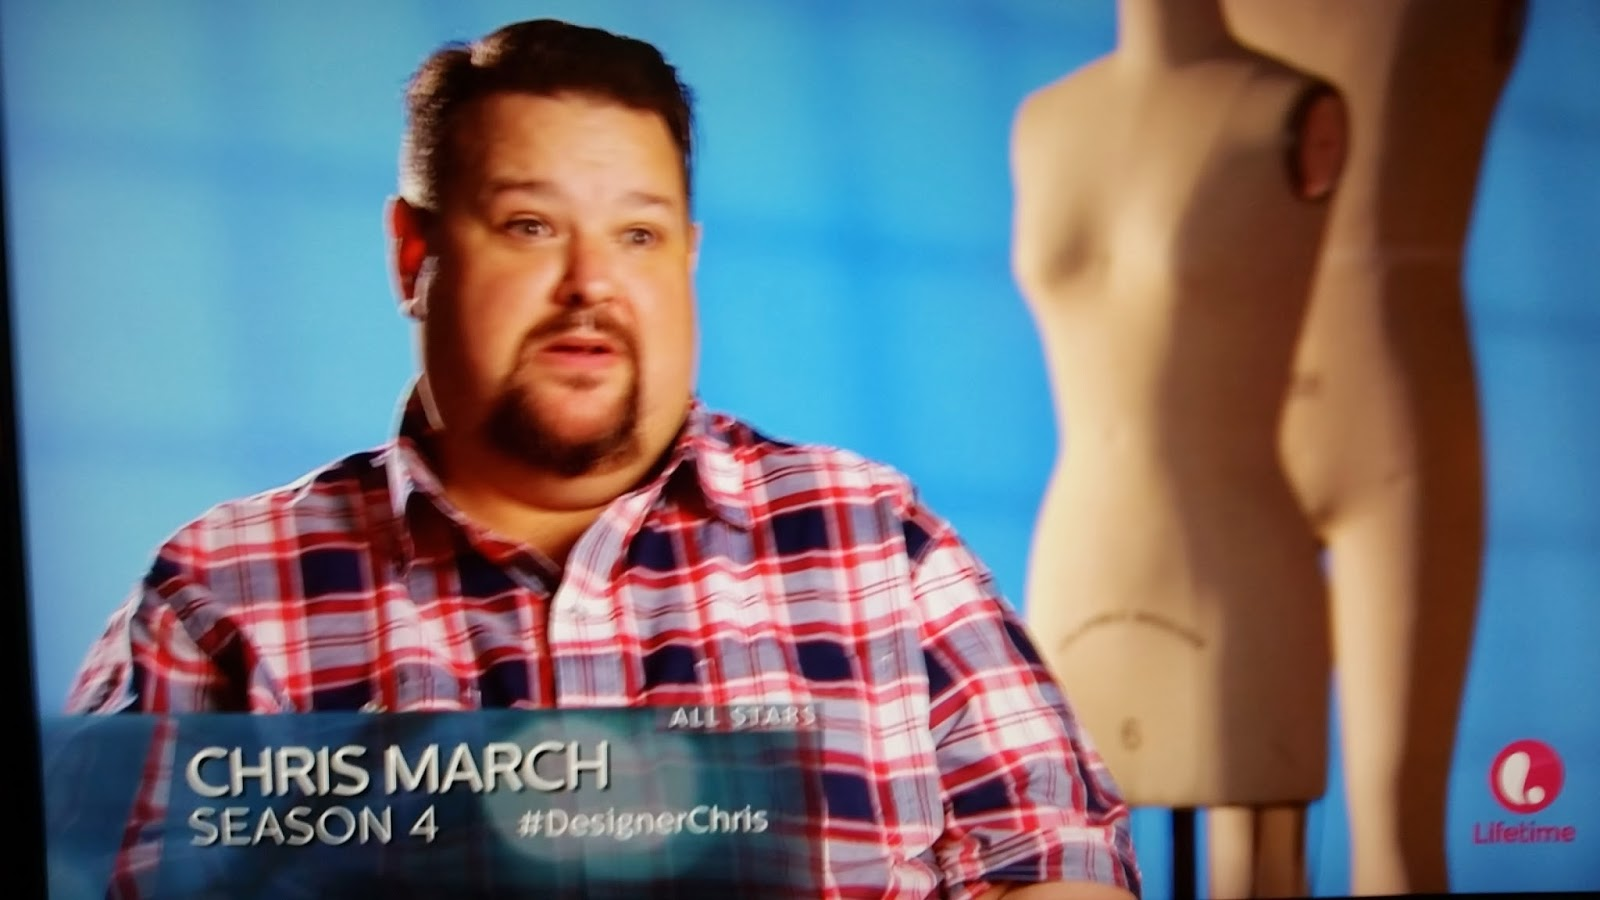 Chris March Project Runway